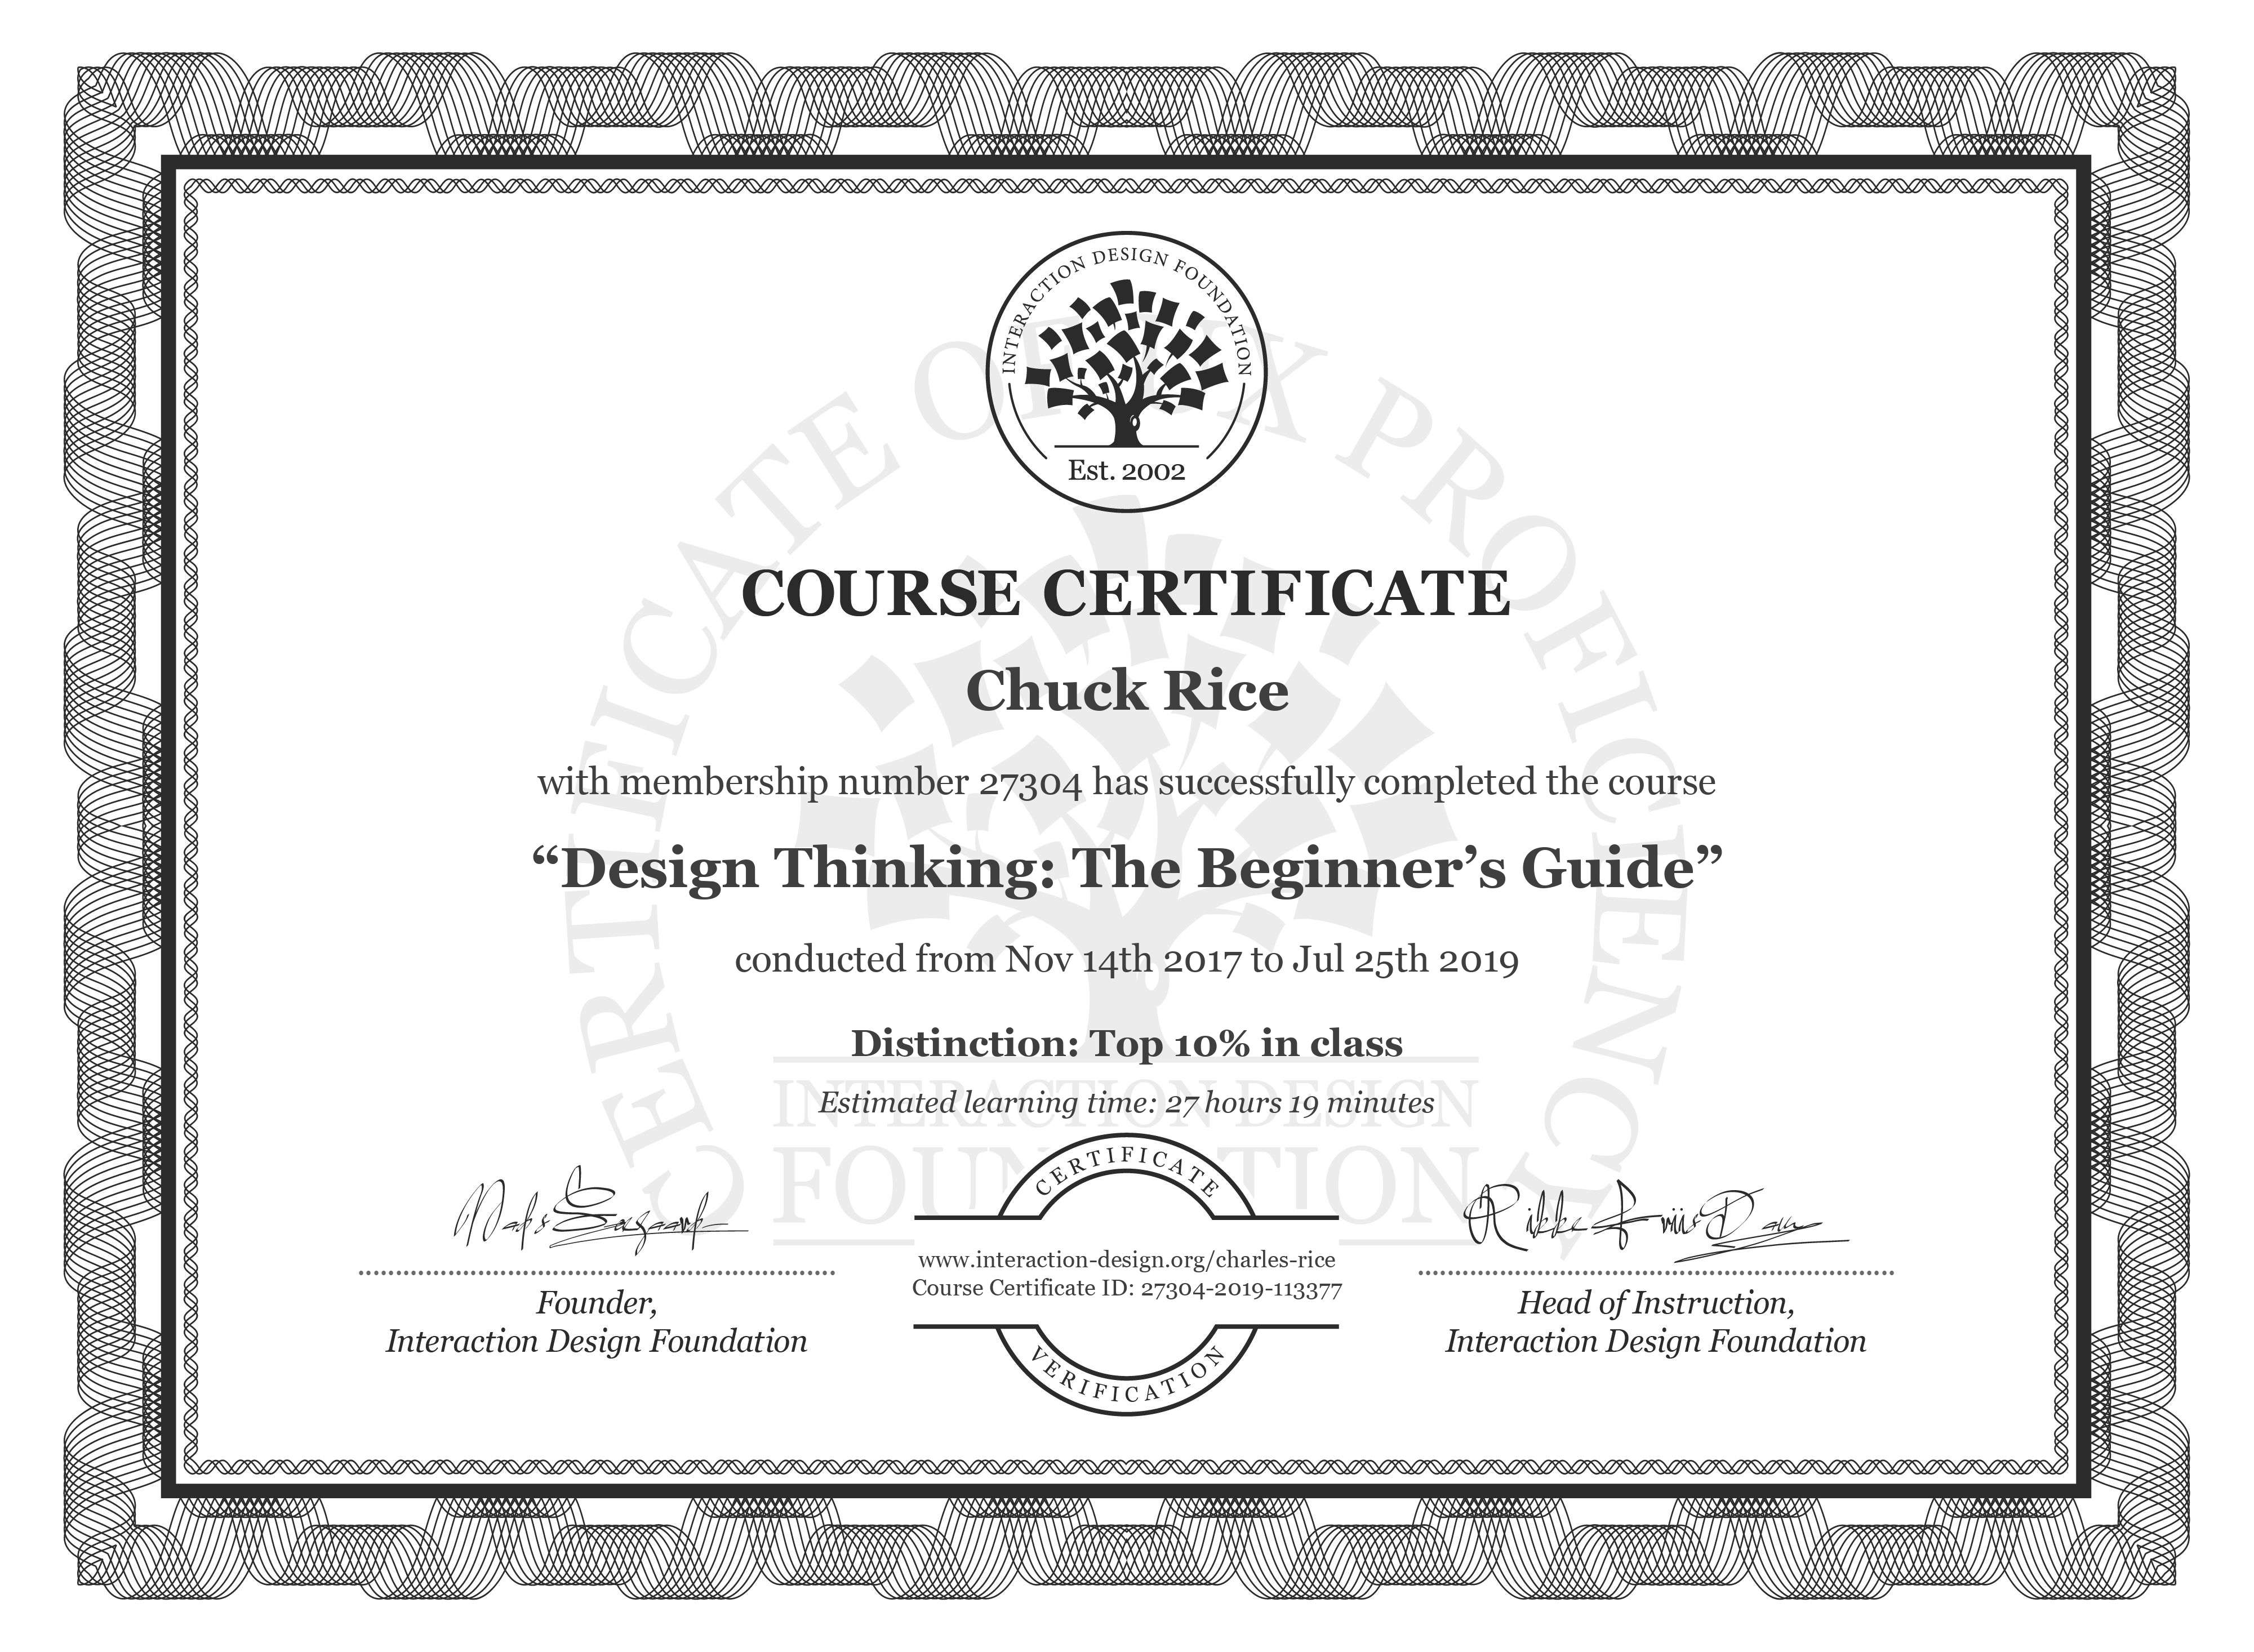 Chuck Rice: Course Certificate - Design Thinking: The Beginner's Guide